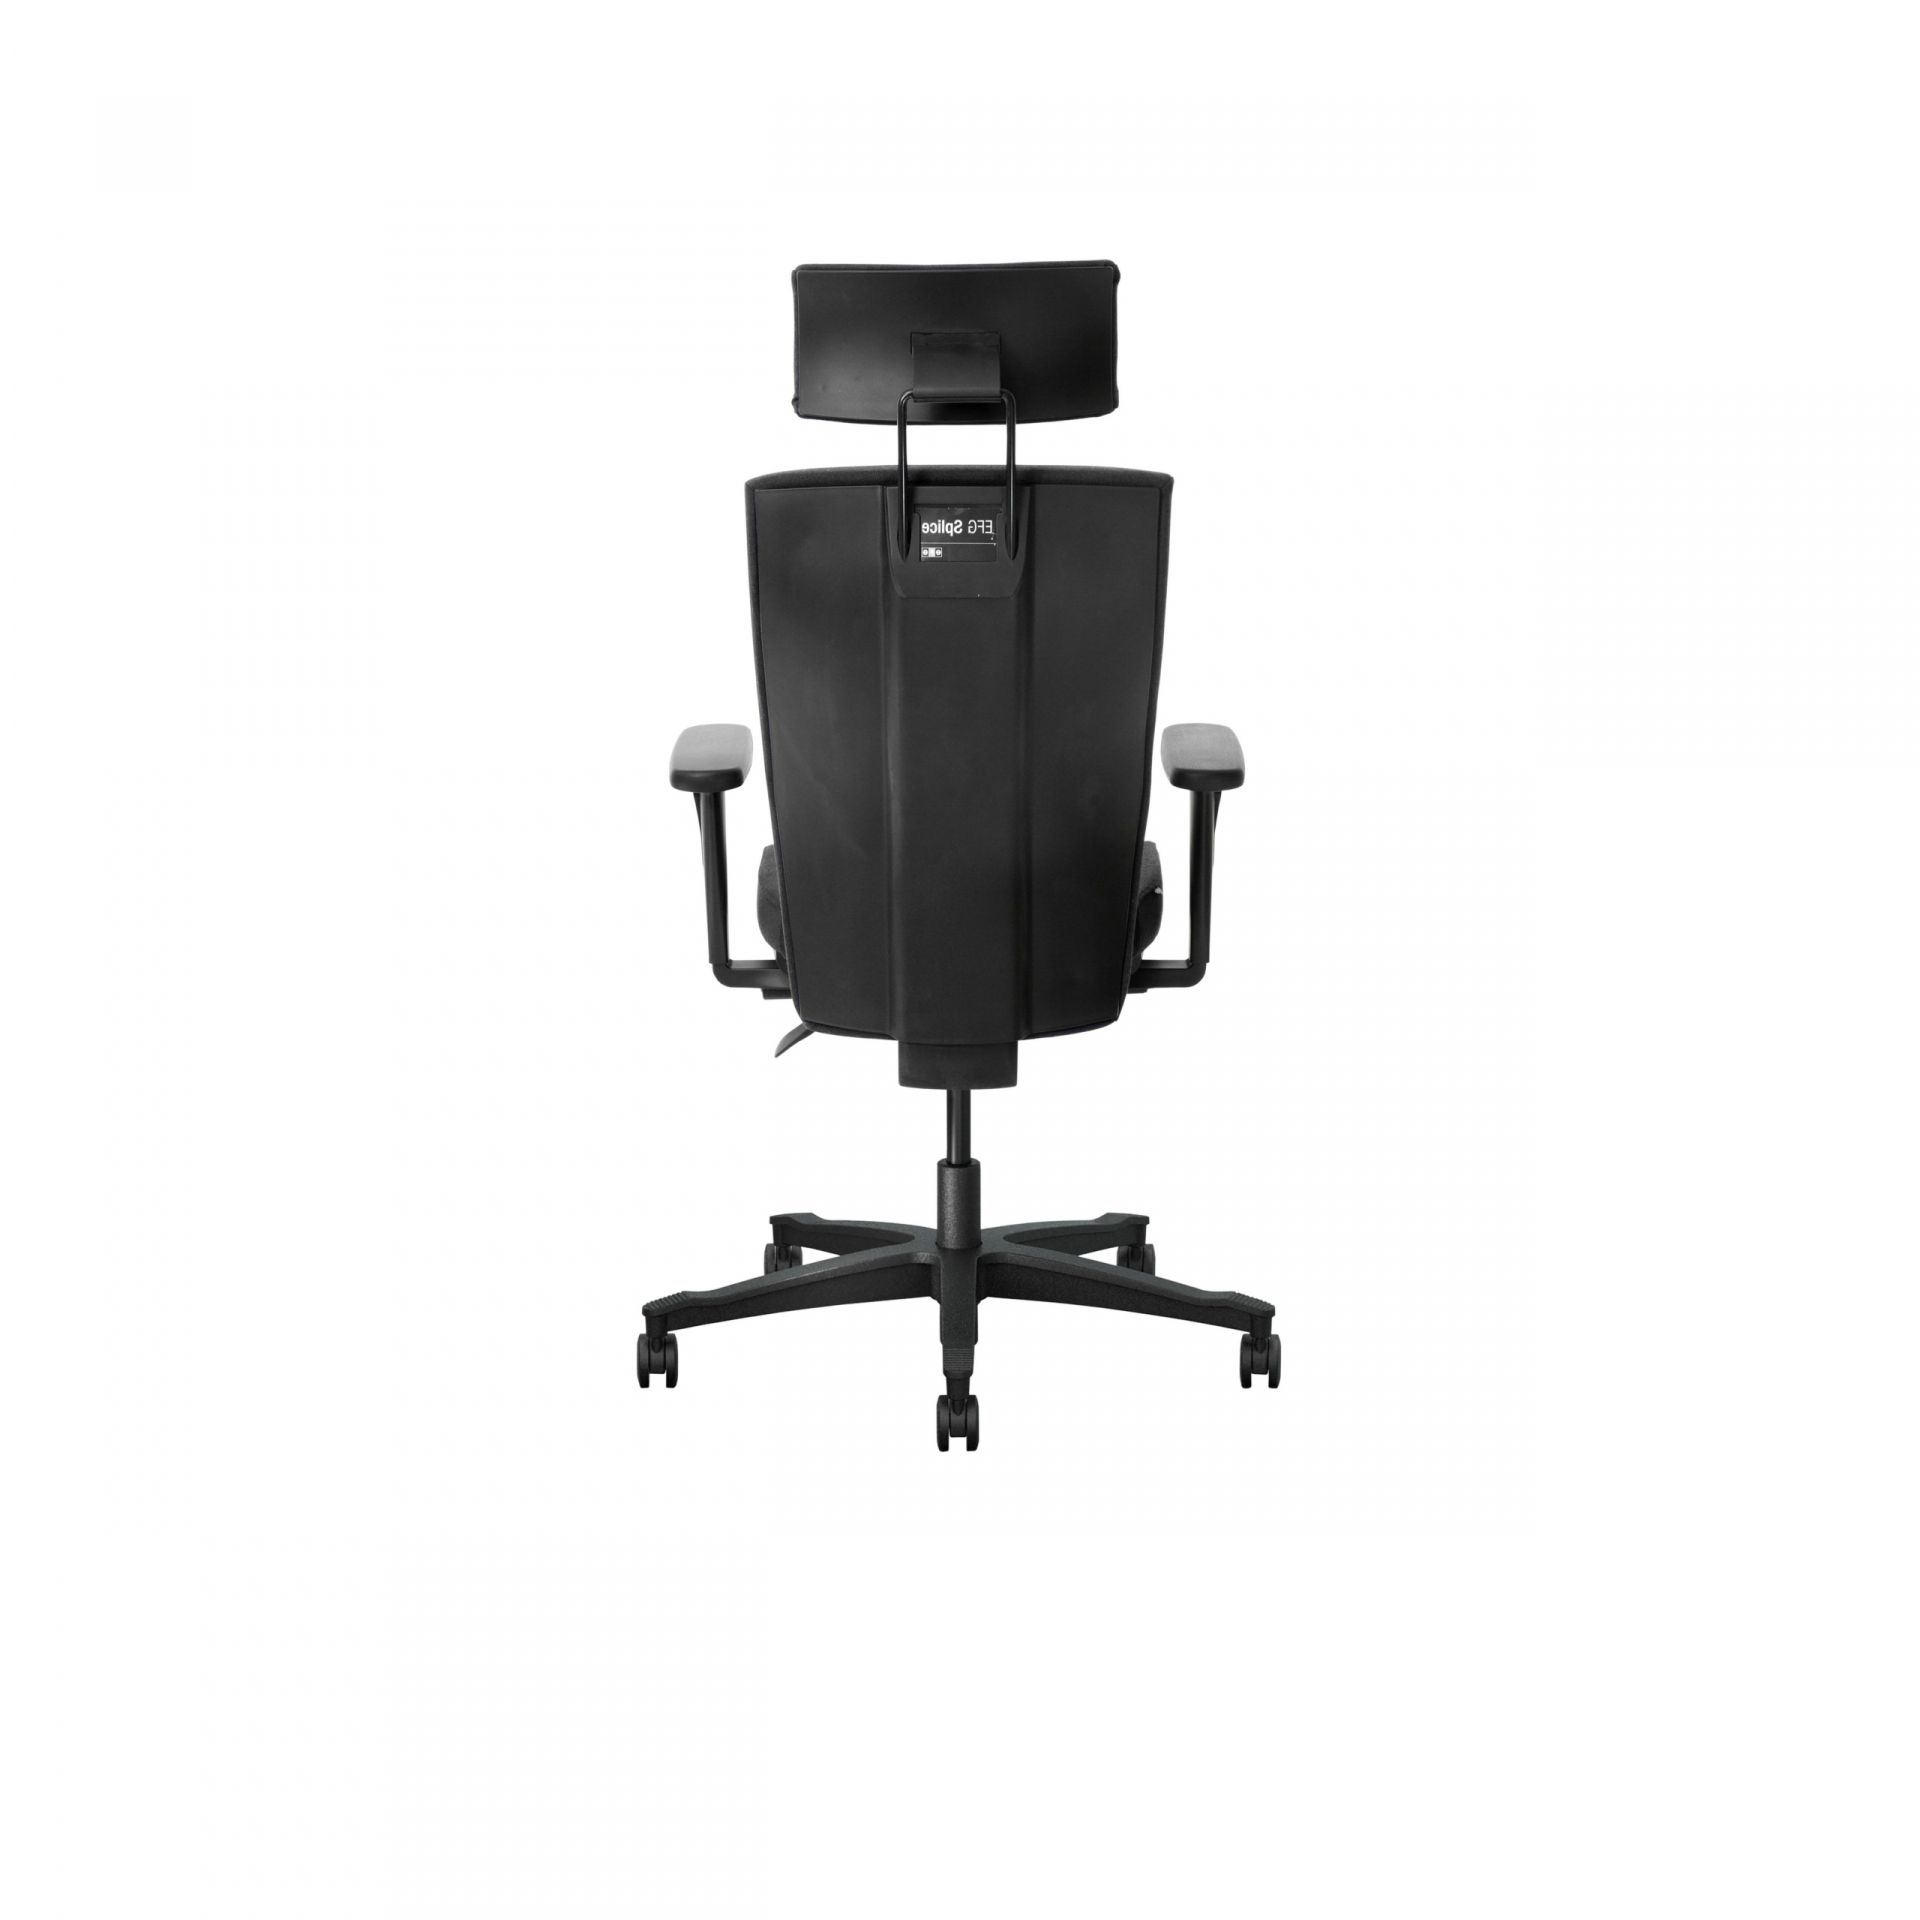 Splice Office chair with upholstered back product image 2